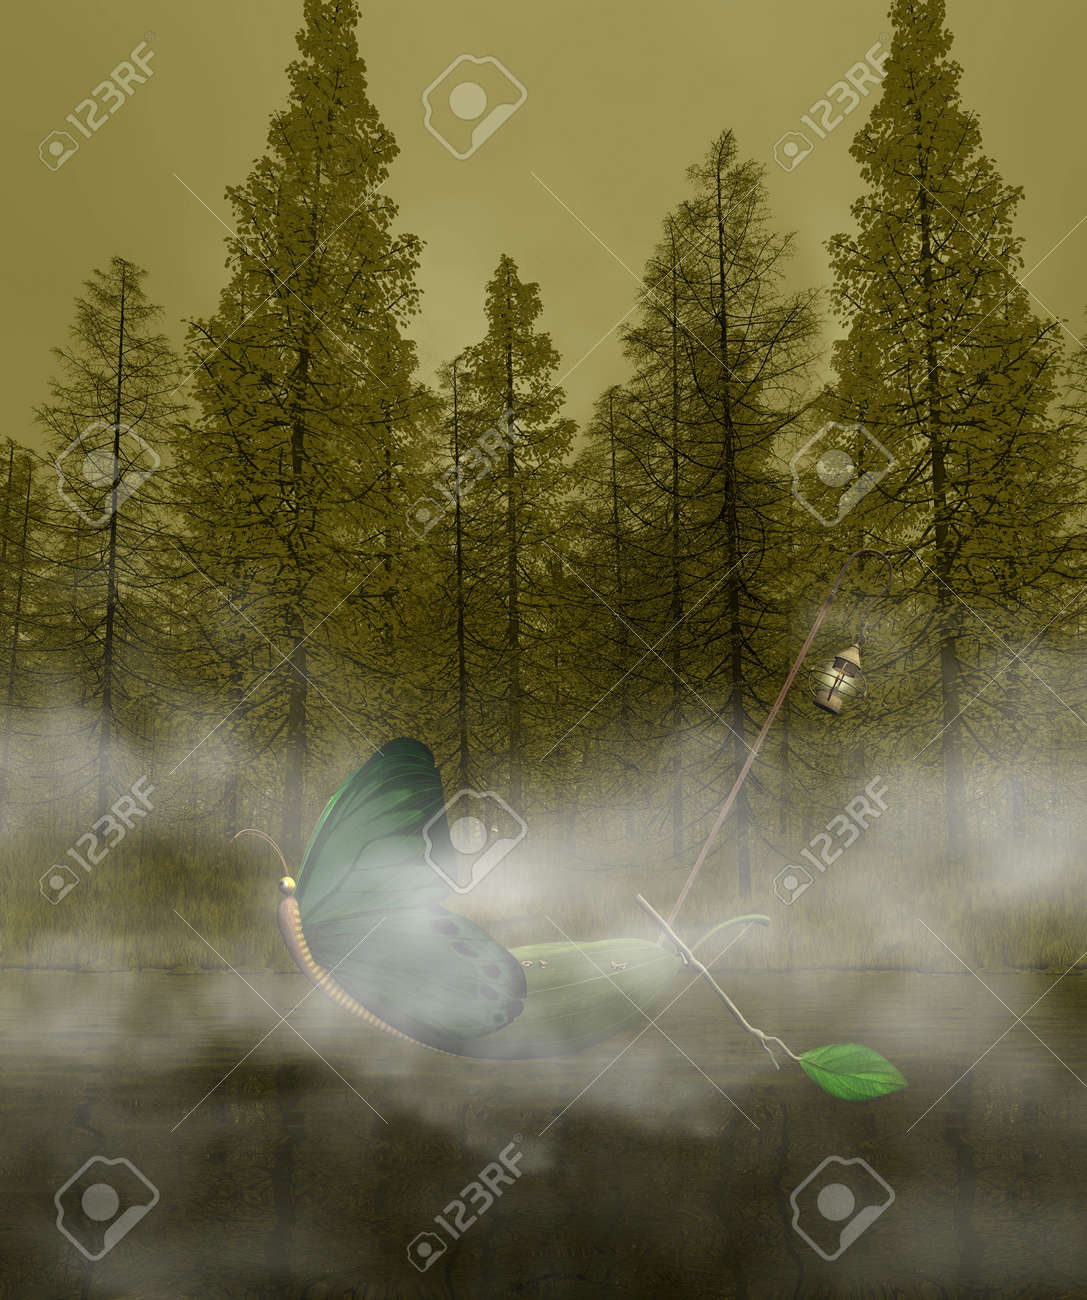 Fantasy boat in the mistyc forest Stock Photo - 13639998